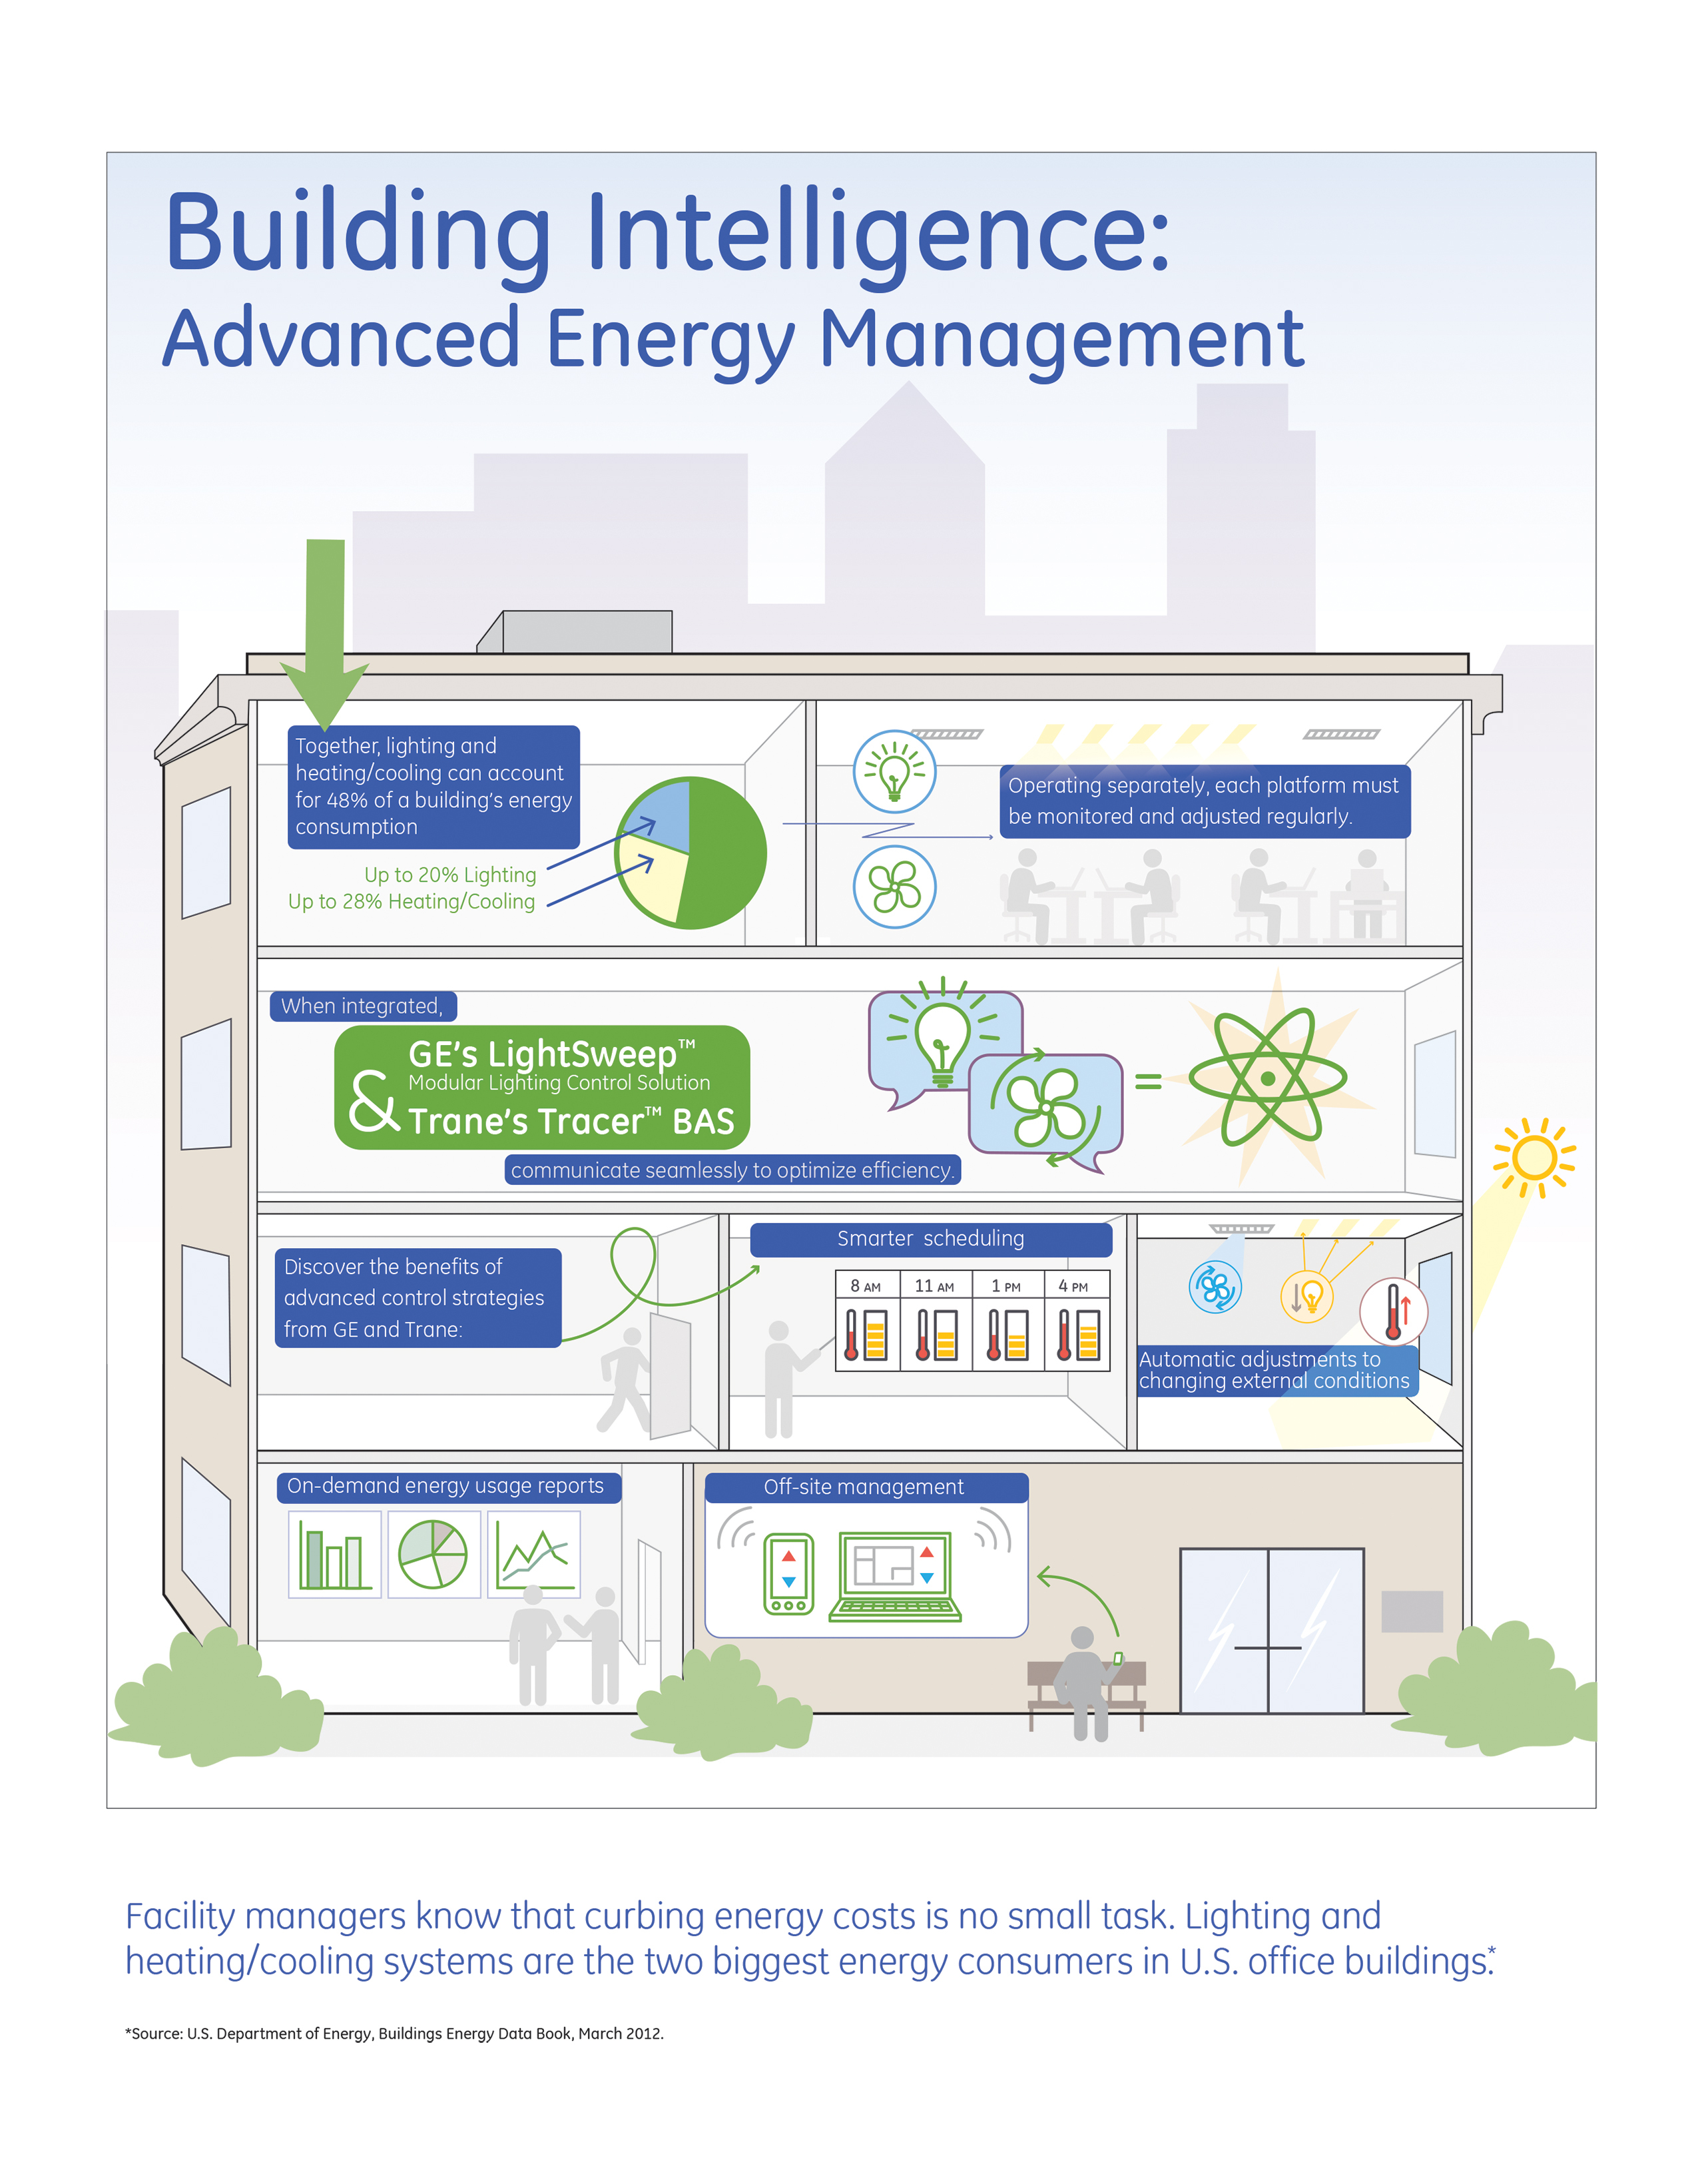 energy costs is no small task. Lighting and heating/cooling systems  #2B4EA0